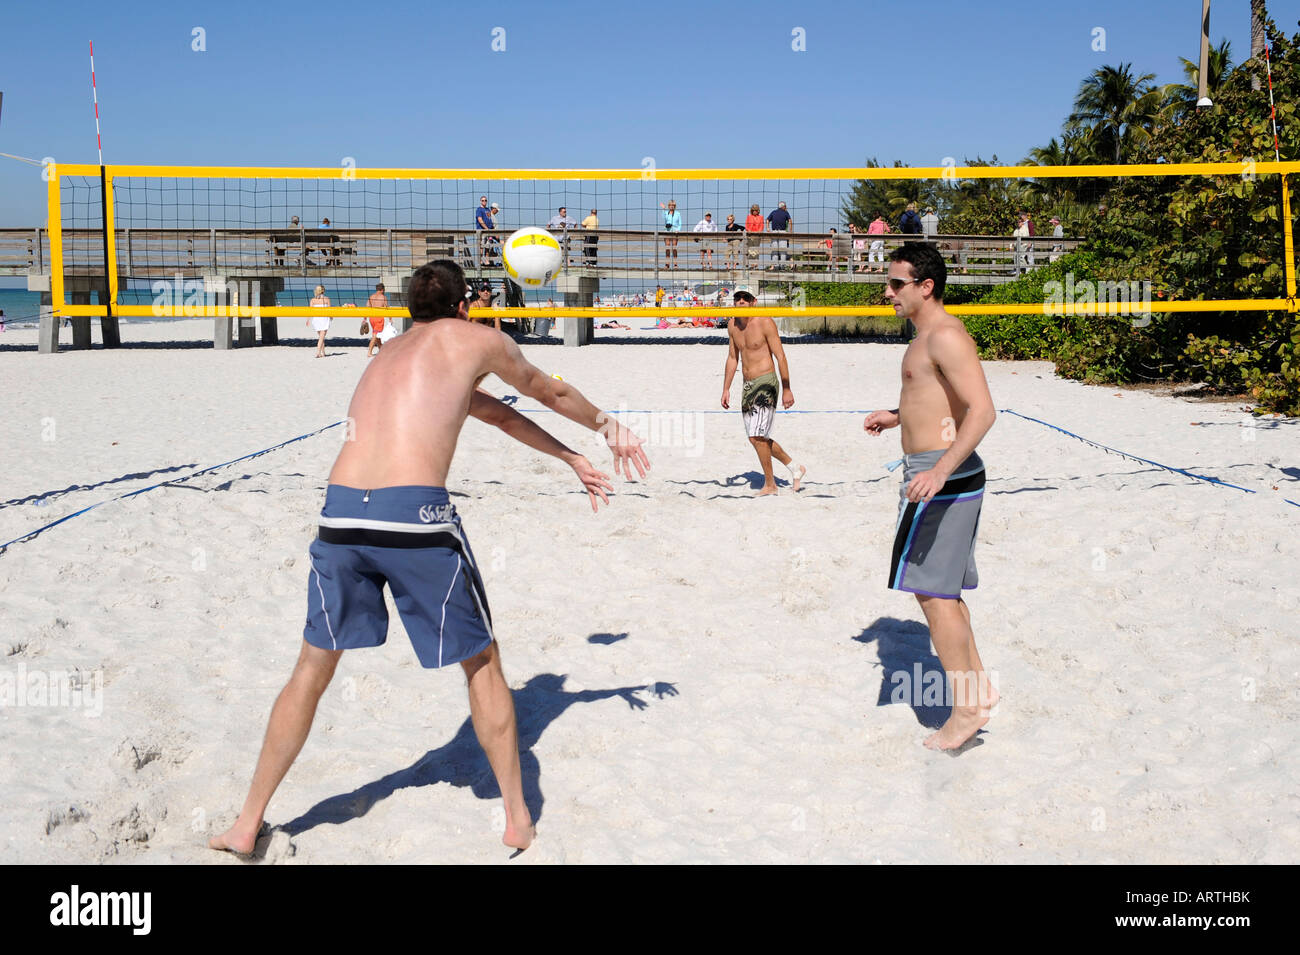 2 plage sur 2 volley-ball joué au Pier Beach Naples Floride Photo Stock